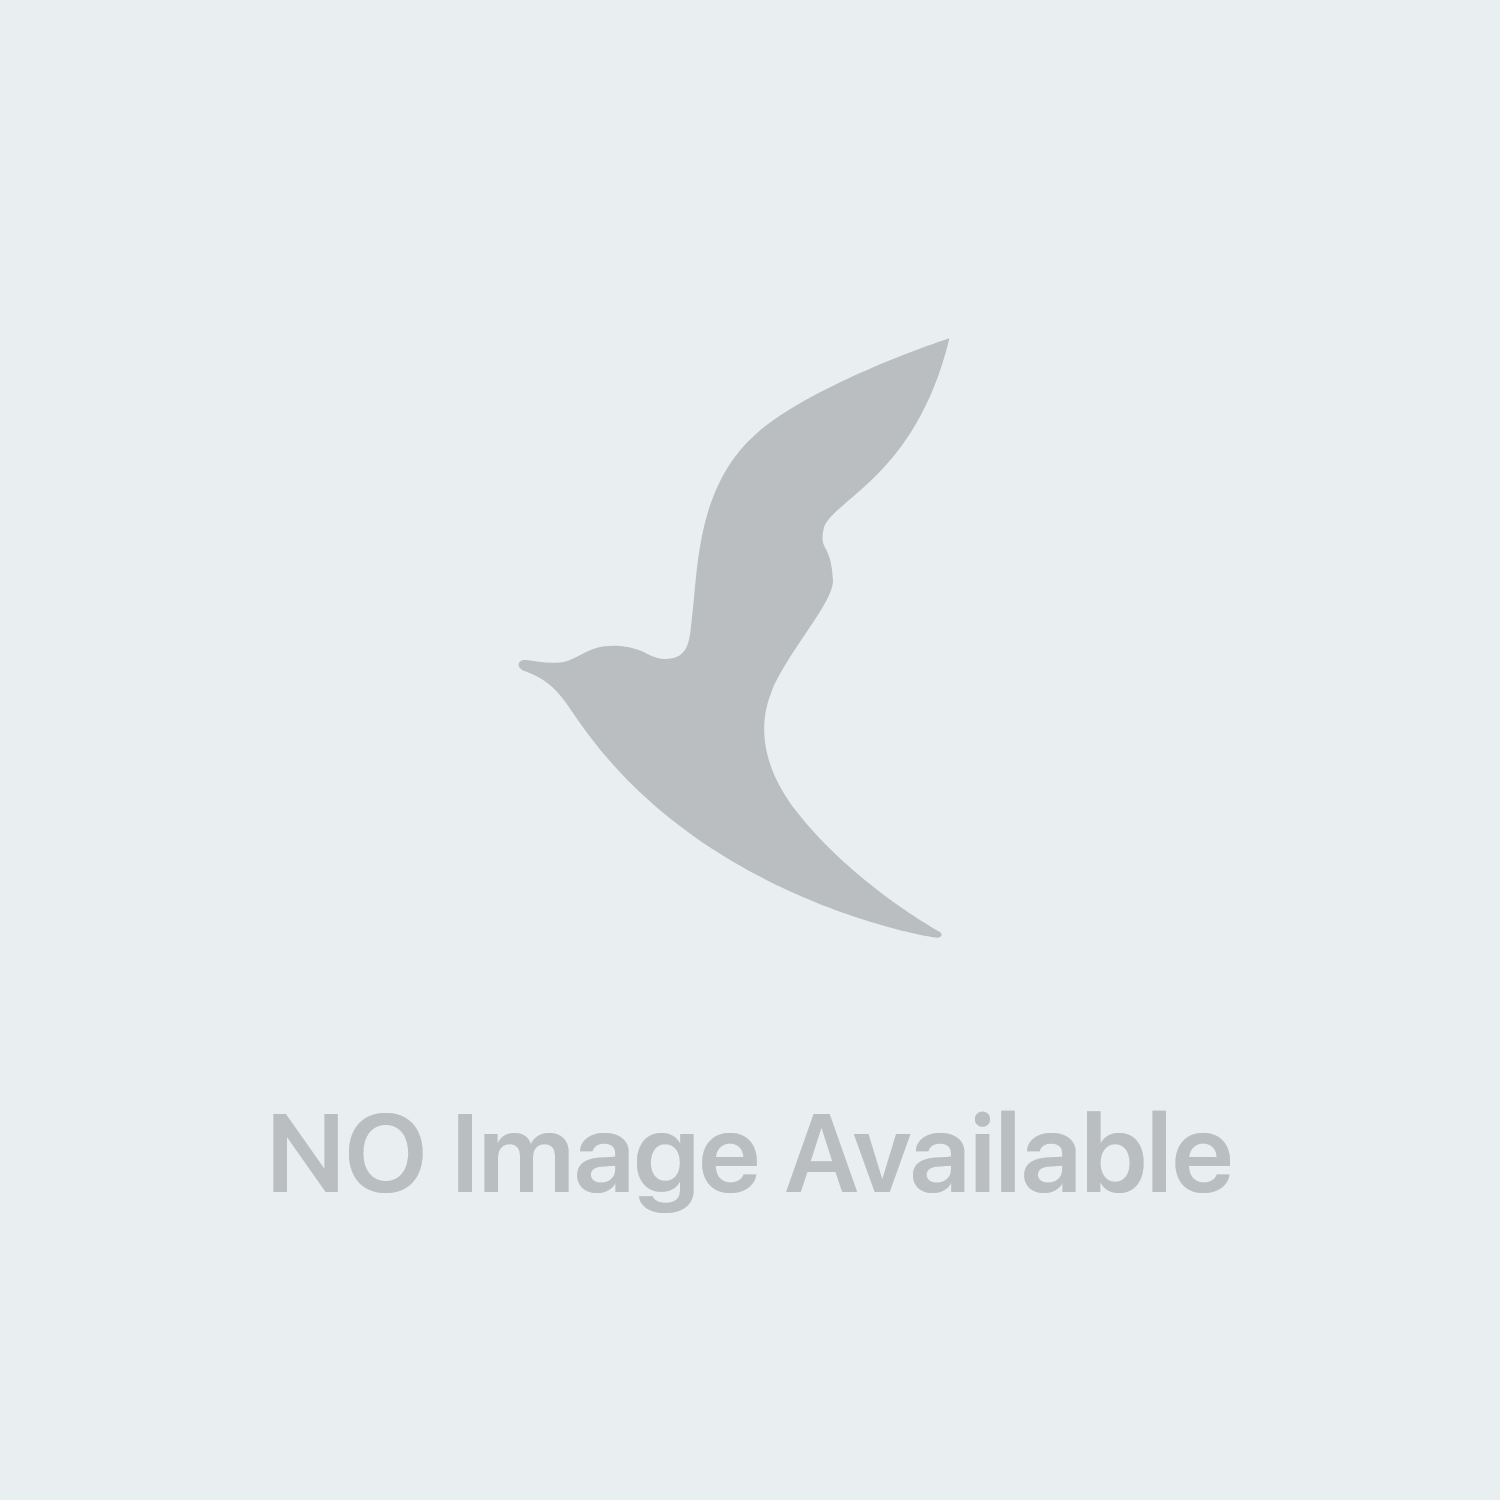 Optima Glucosamina Joint Complex Gel Antinfiammatorio 125 ml